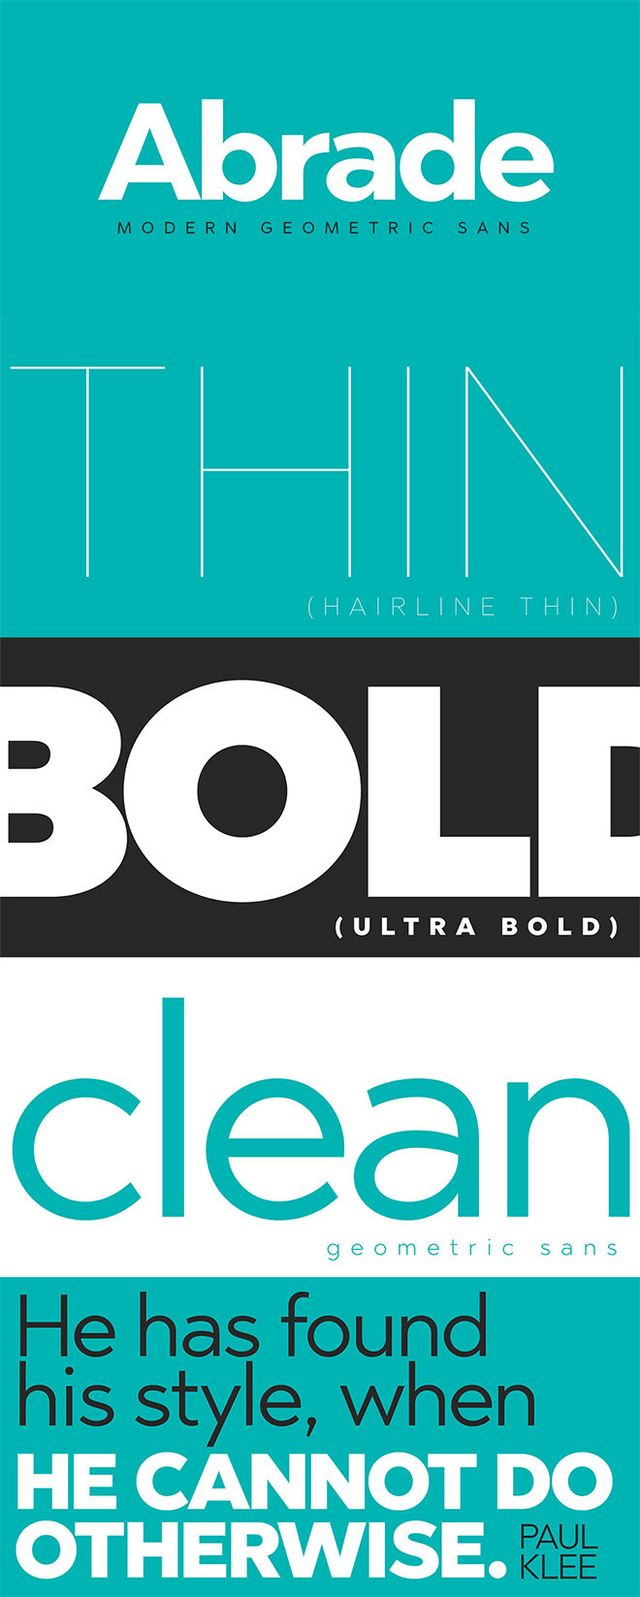 The Complete Font Lover's Library Can be Yours for Just $29